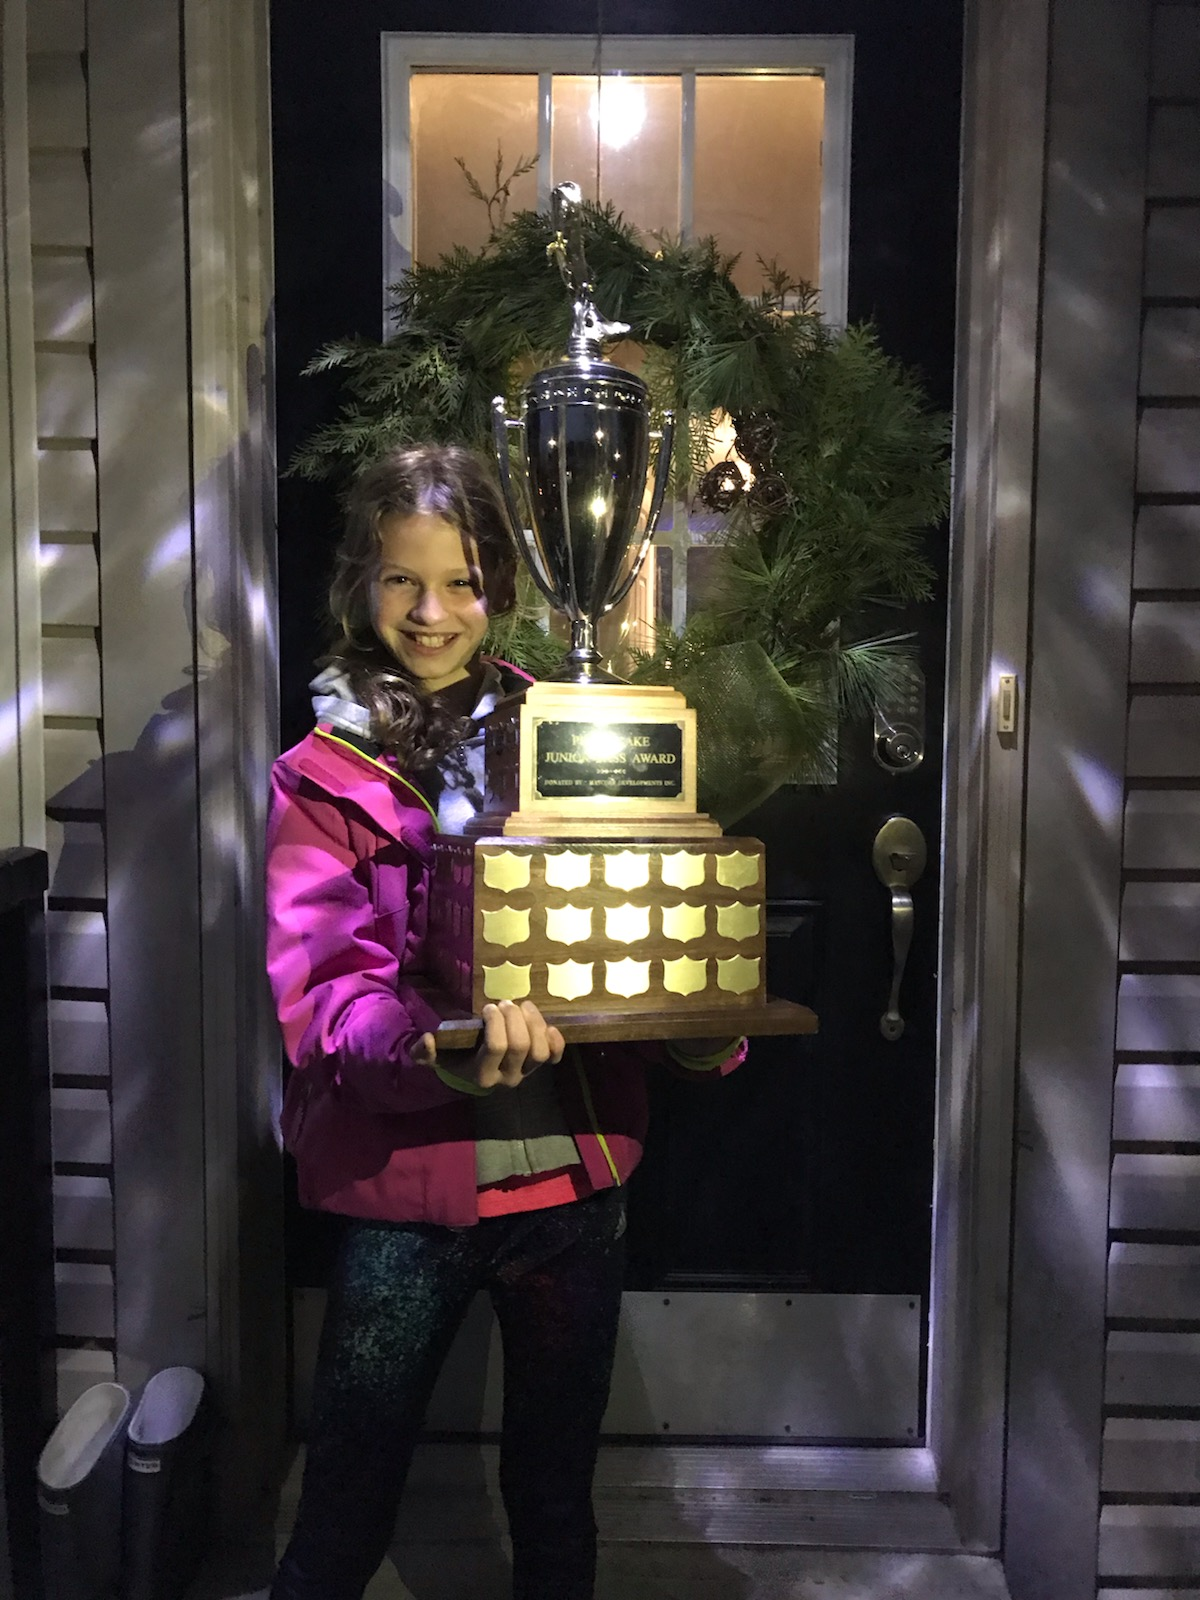 Sophia Edey holding a the youth fishing trophy